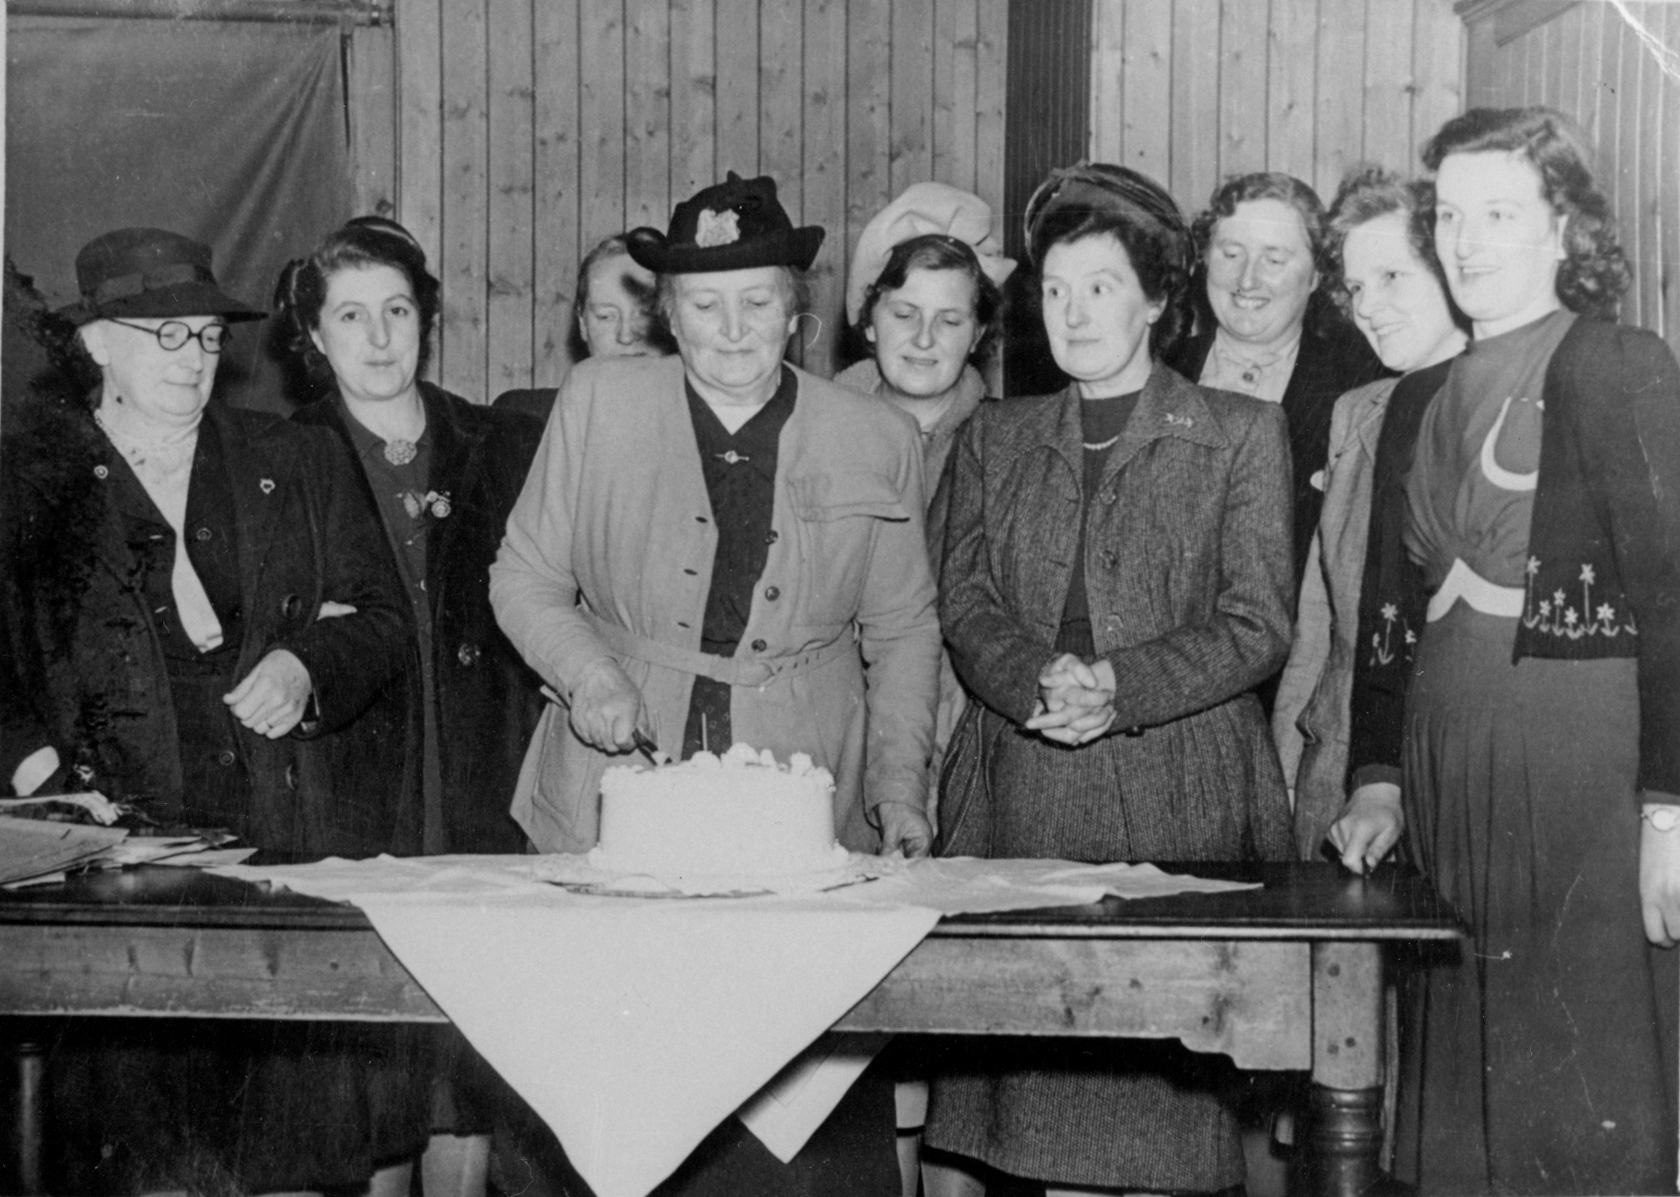 Scottish Women's Rural Institute Celebration 1950s